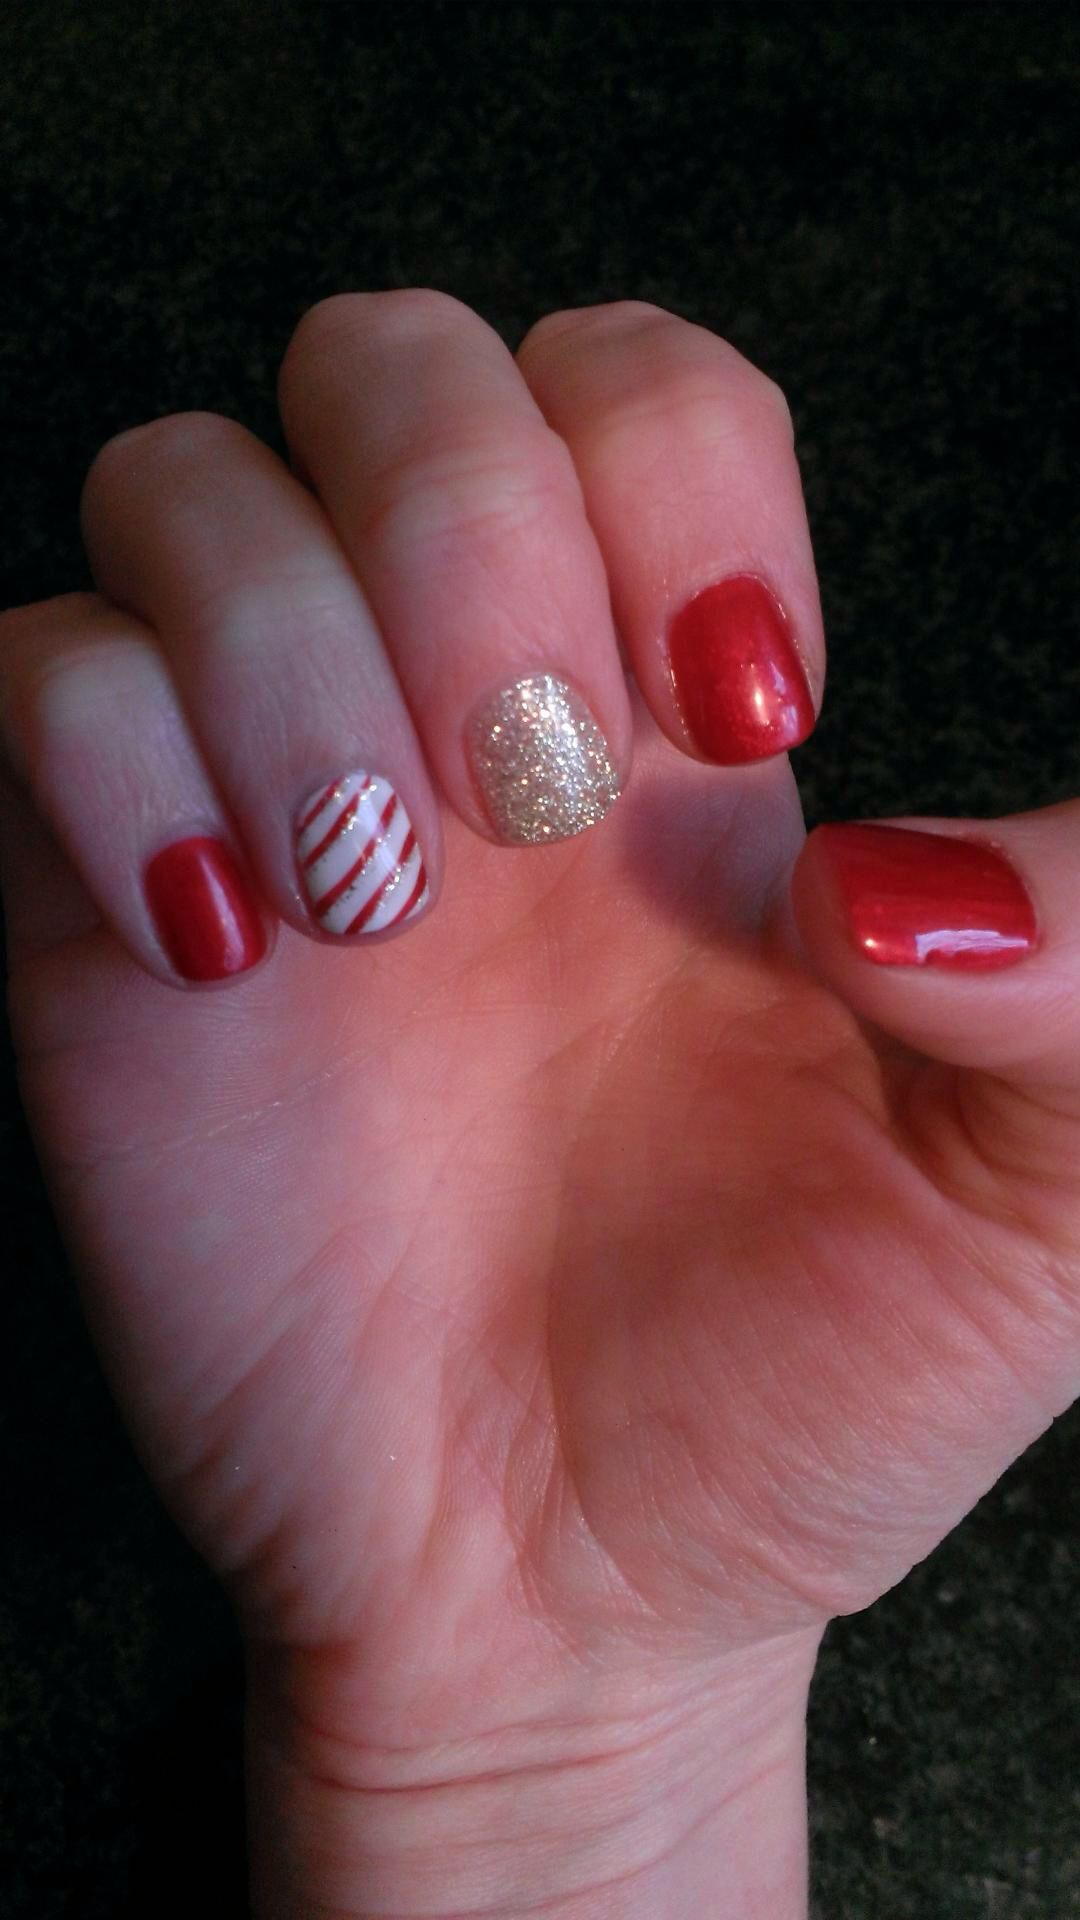 Candy cane, Nail Art, Christmas, Christmas Nails, Nail